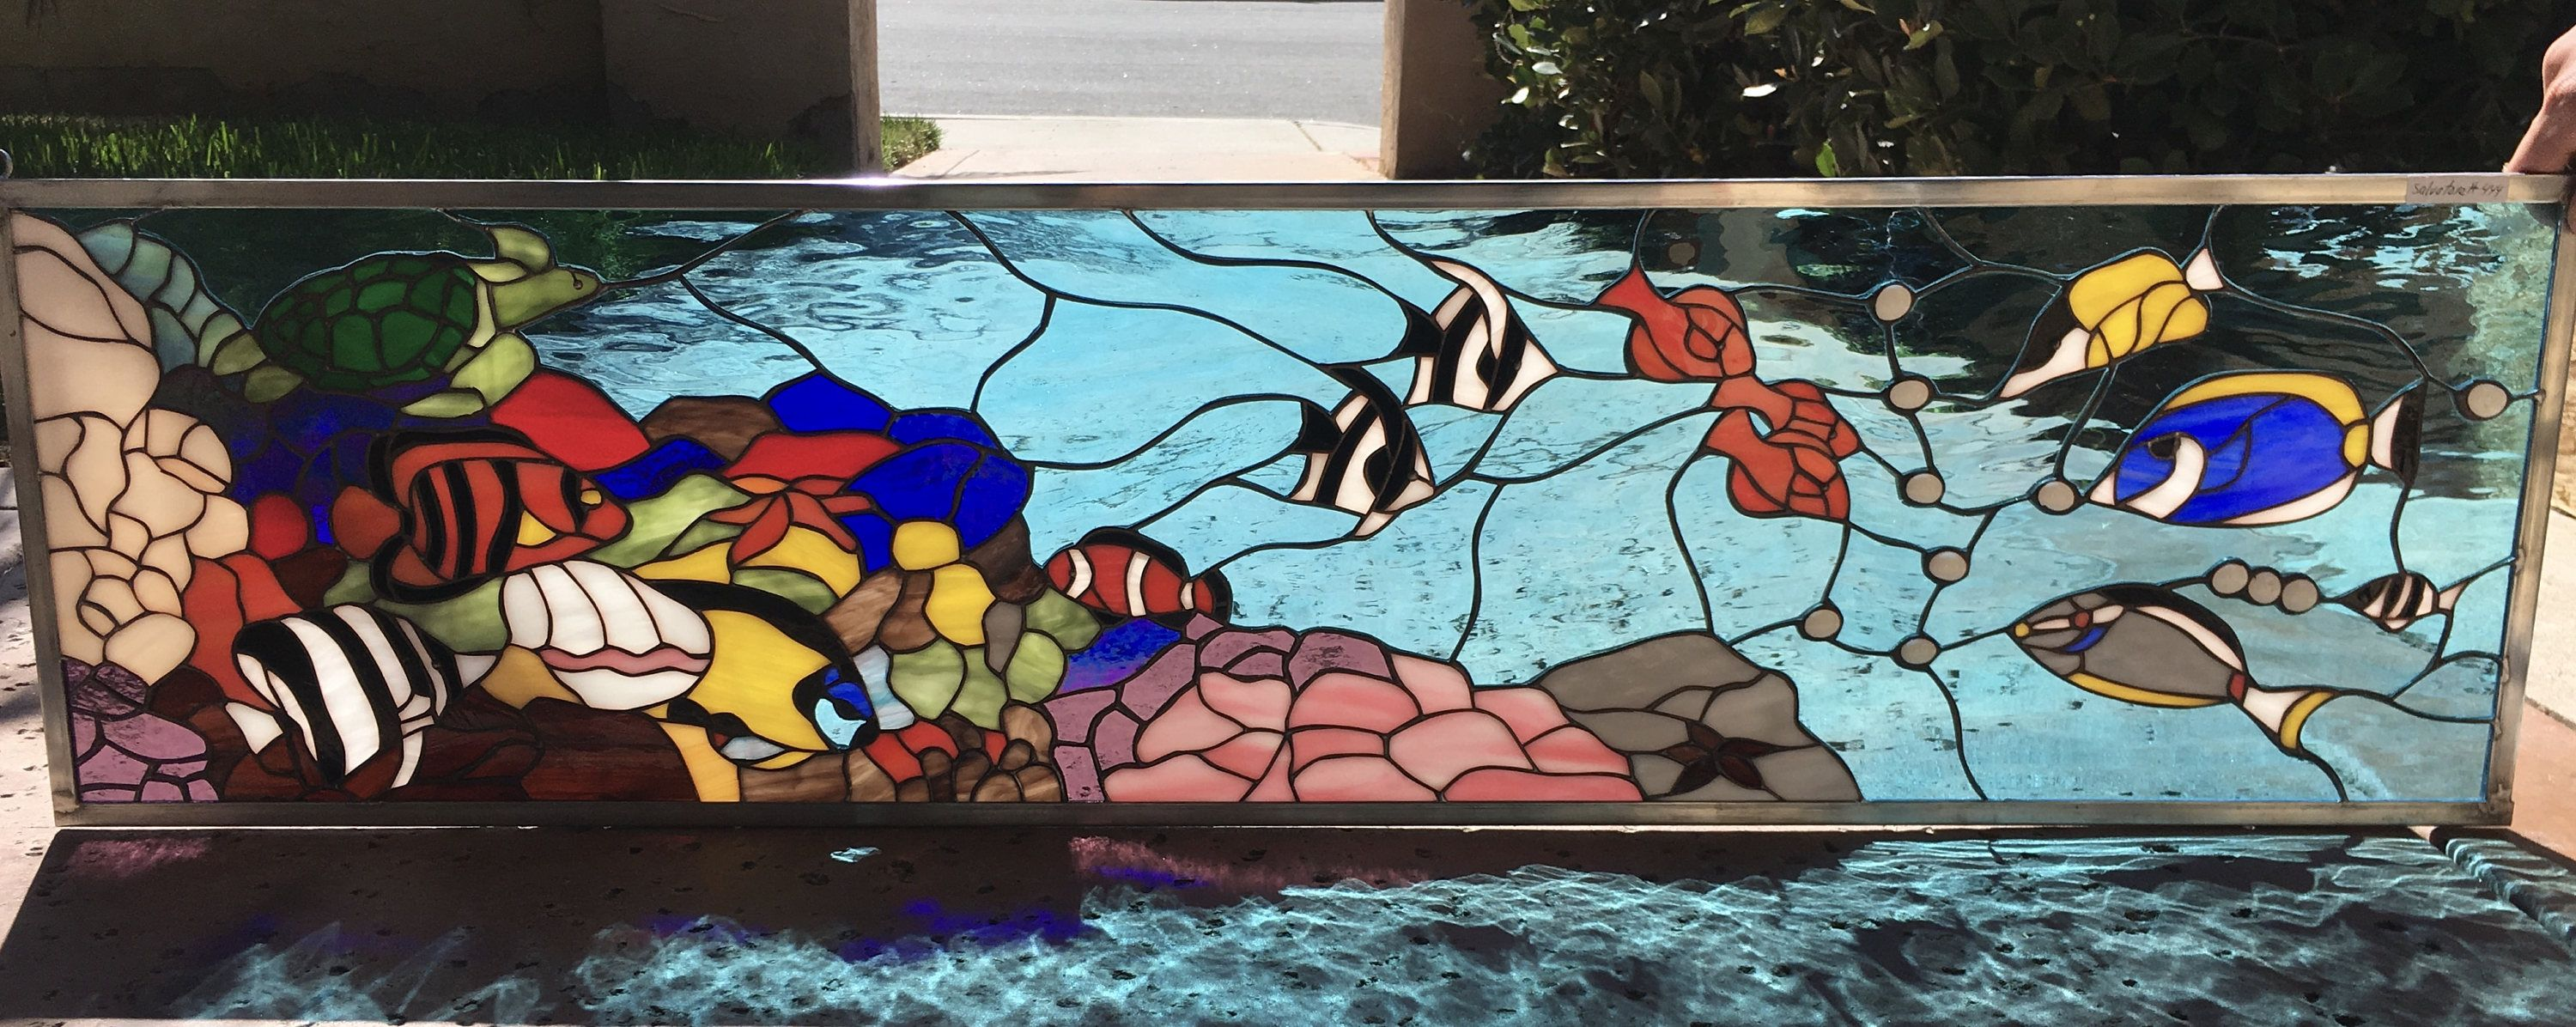 The Fish Tank Incredibly Colorful Turtle Fish And Coral Reef Leaded Stained Glass Transom Window We Do Custom Work In 2020 Stained Glass Fish Tank Making Stained Glass